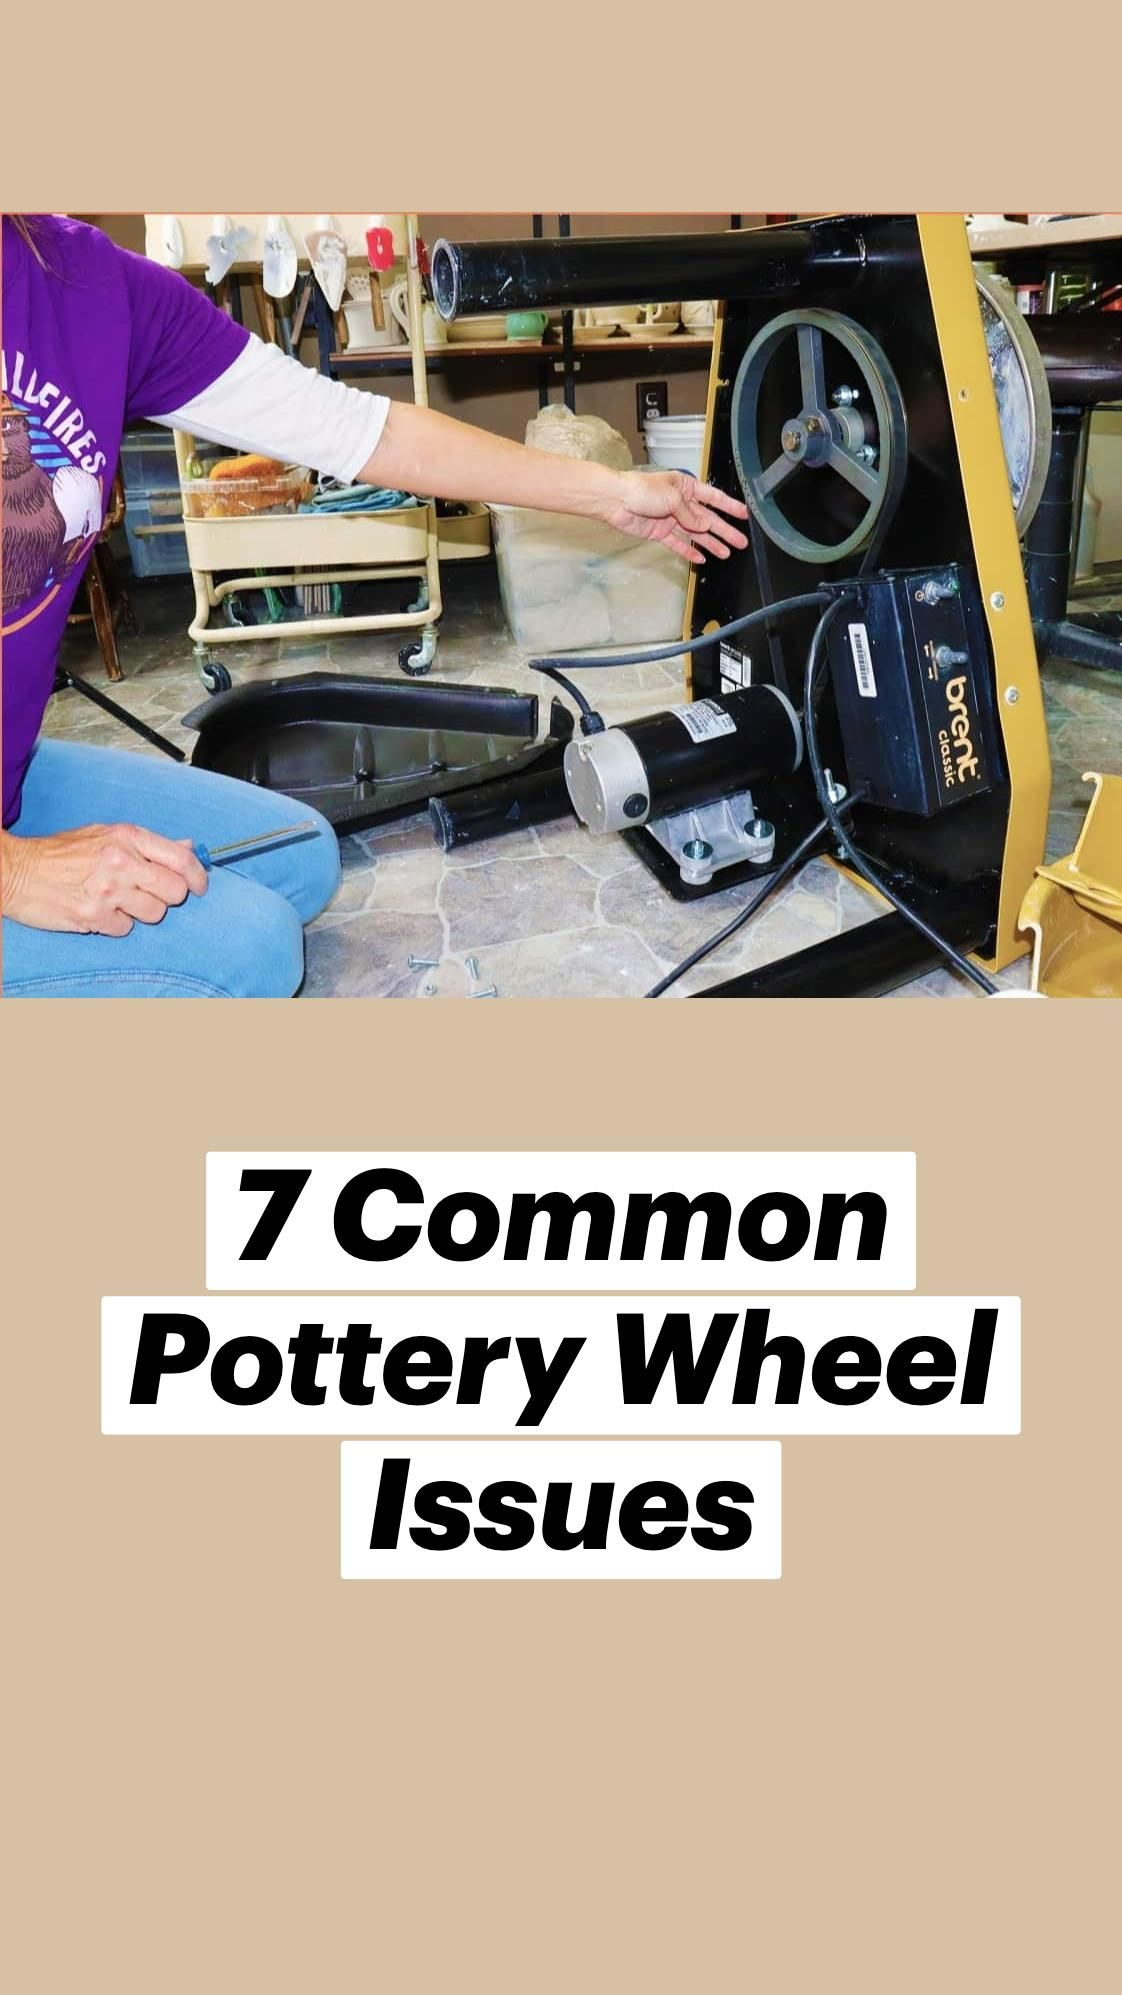 7 Common Pottery Wheel Issues